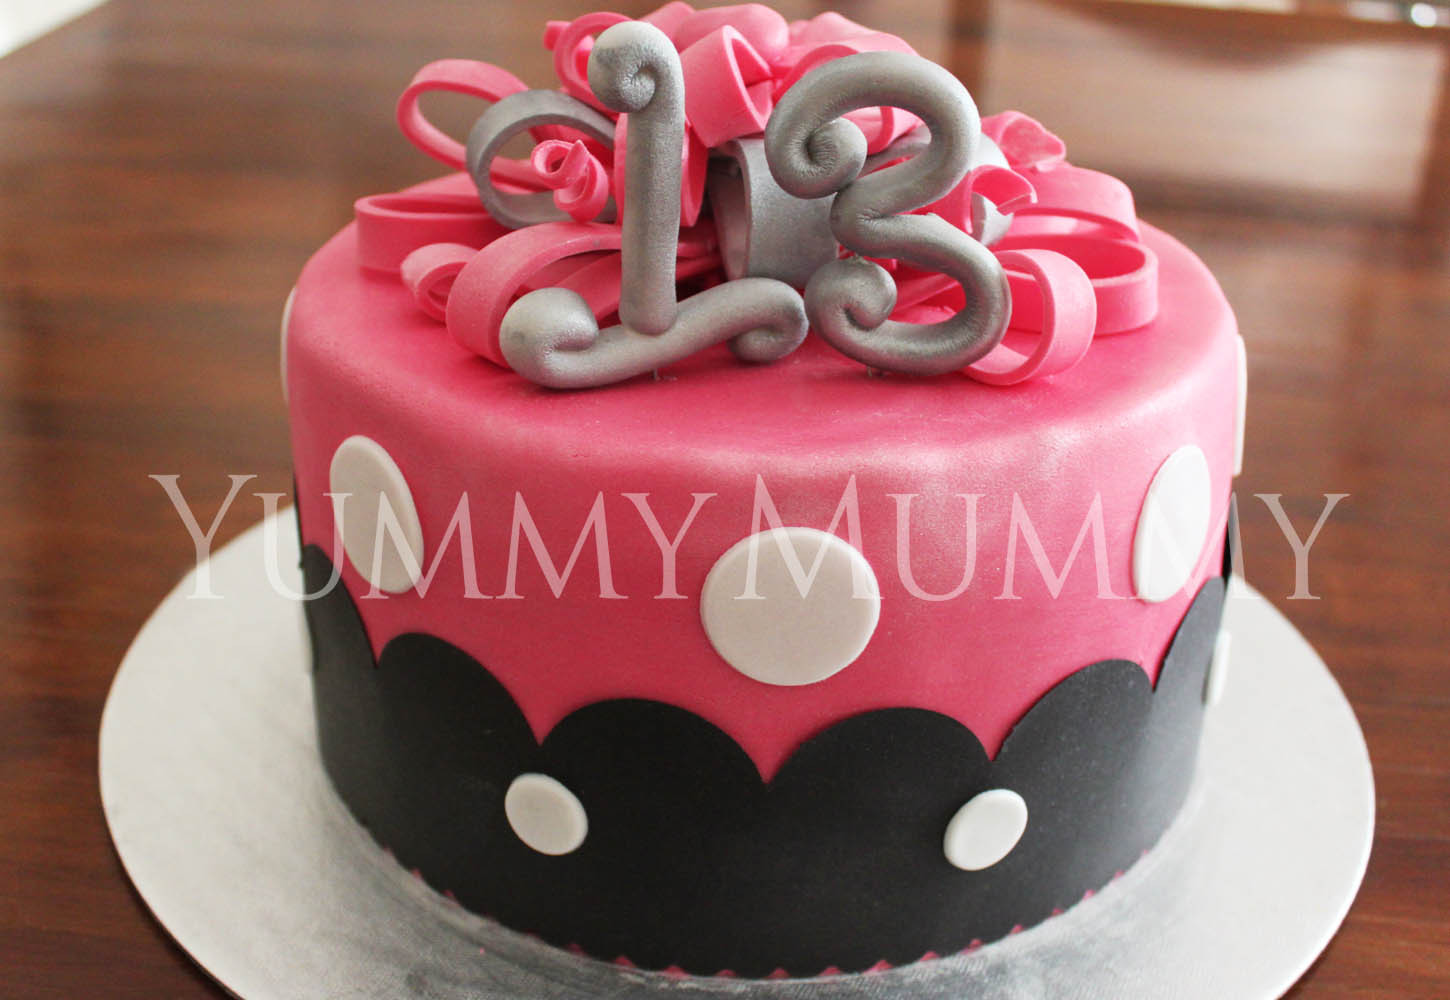 Best ideas about 13 Birthday Cake . Save or Pin 13th Birthday Cake Yummy Mummy Now.